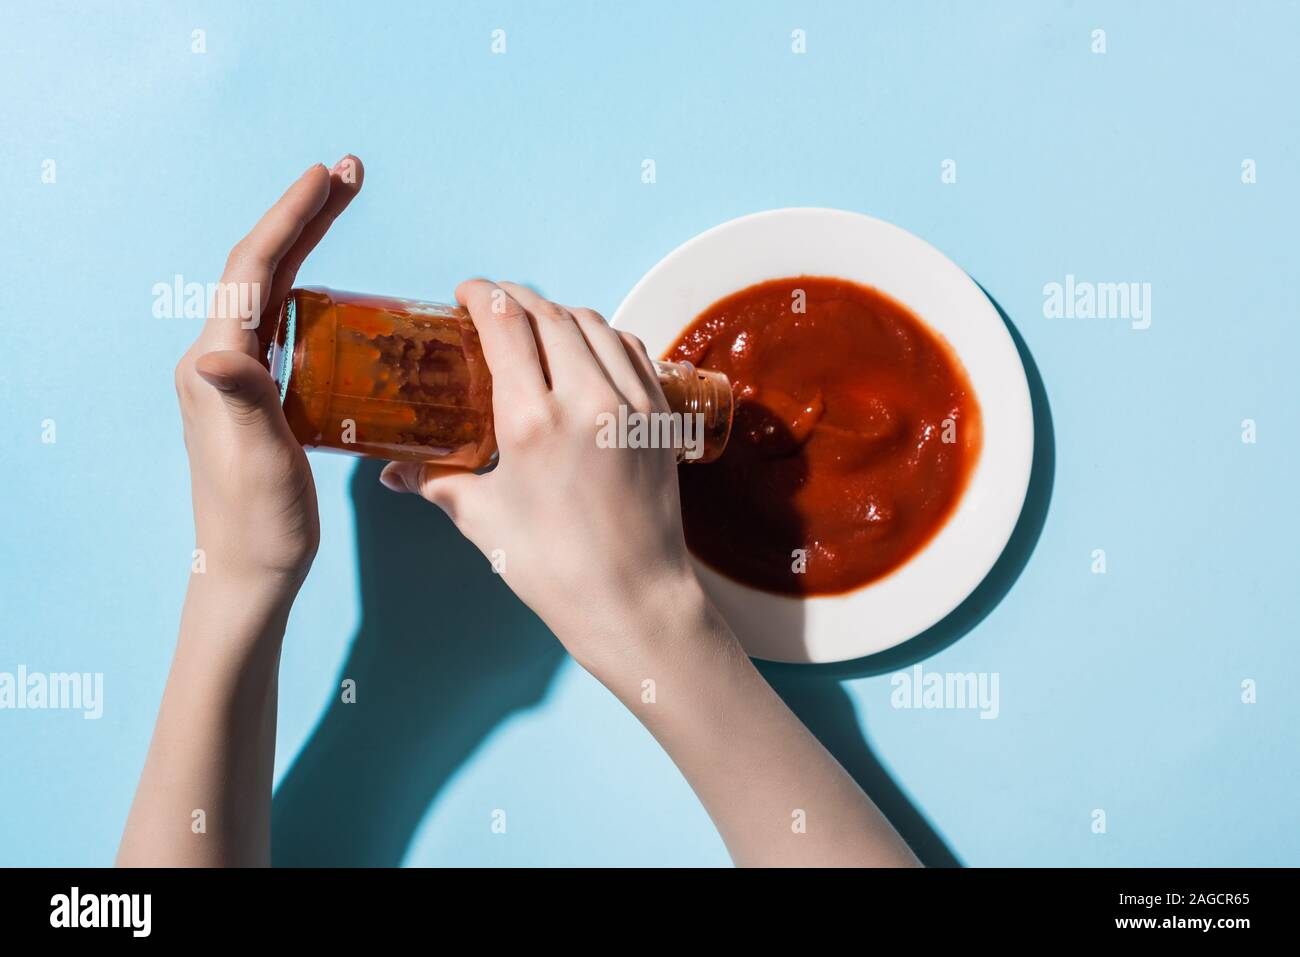 Cropped view of woman pouring tomato sauce from bottle to plate on blue background Stock Photo